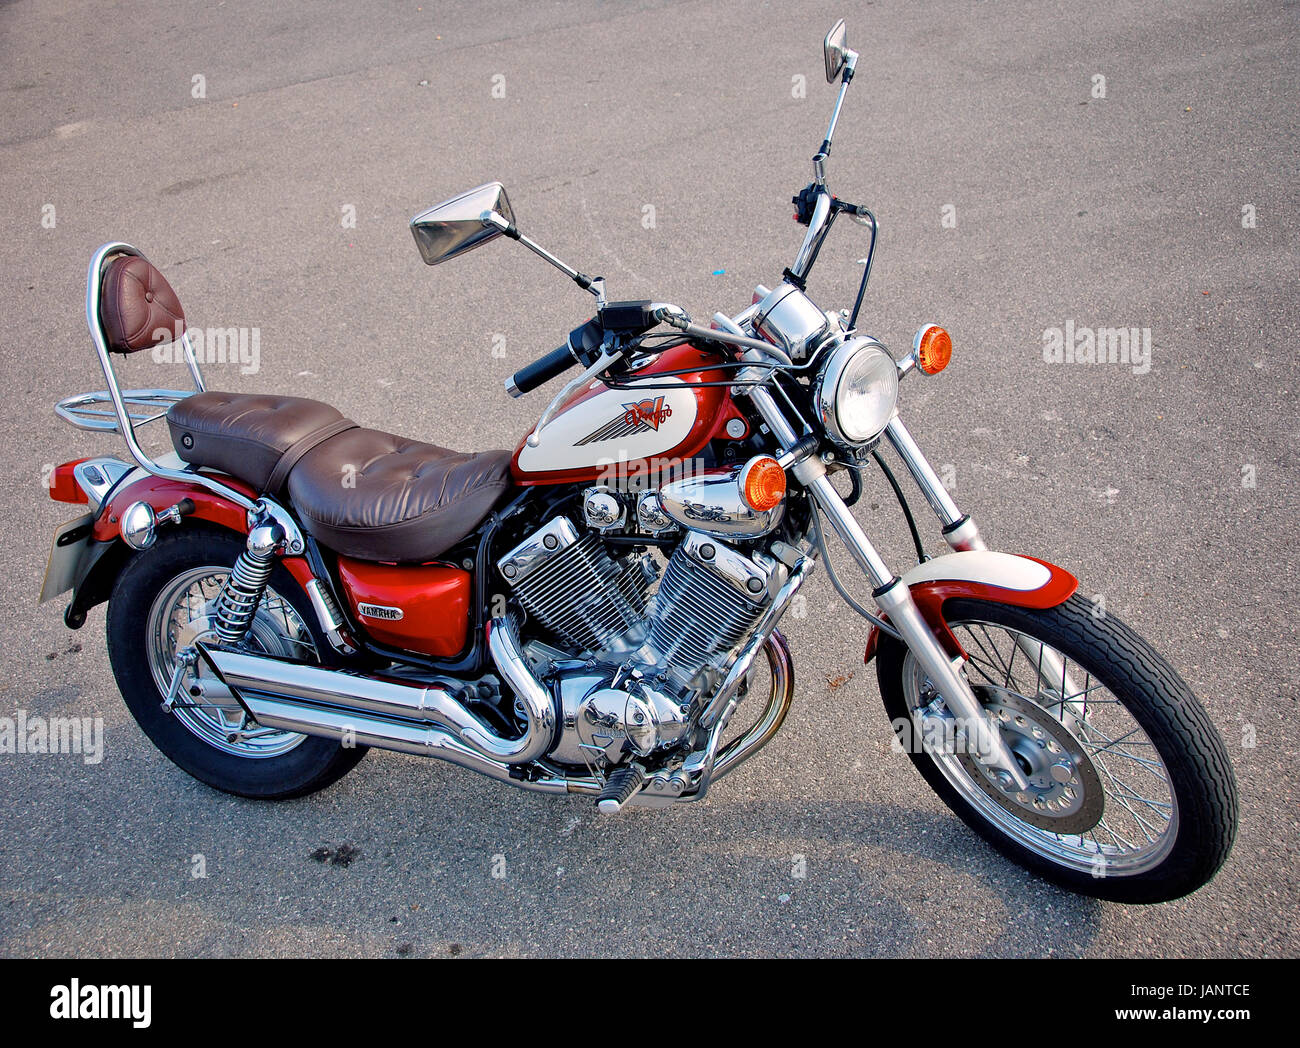 yamaha virago 535 motorcycle stock photo royalty free. Black Bedroom Furniture Sets. Home Design Ideas